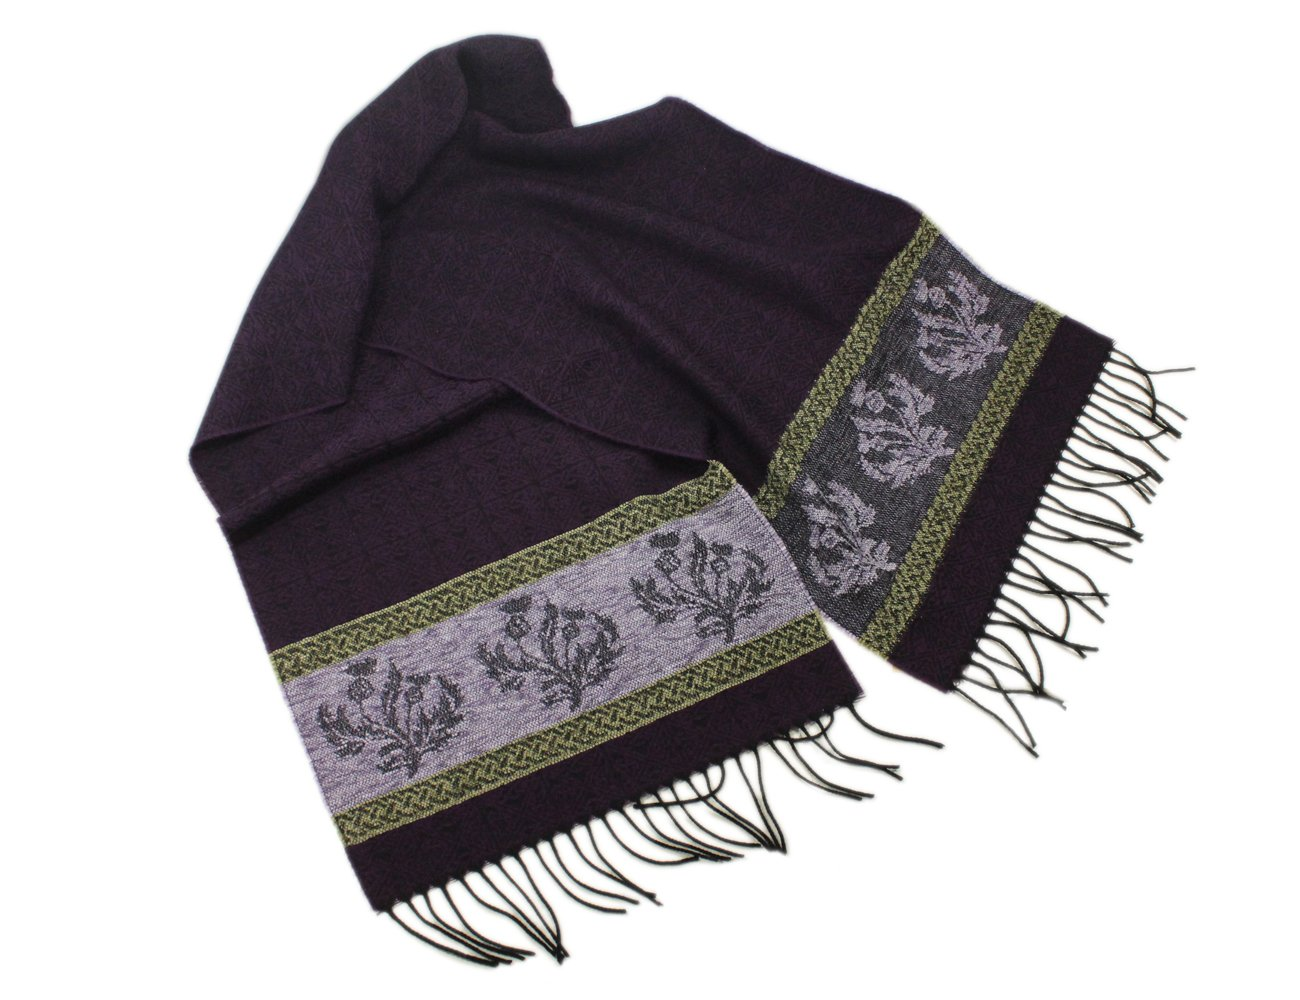 Calzeat Celtic Scarf Wool & Chenille 70'' by 14'' Purple Made in Scotland